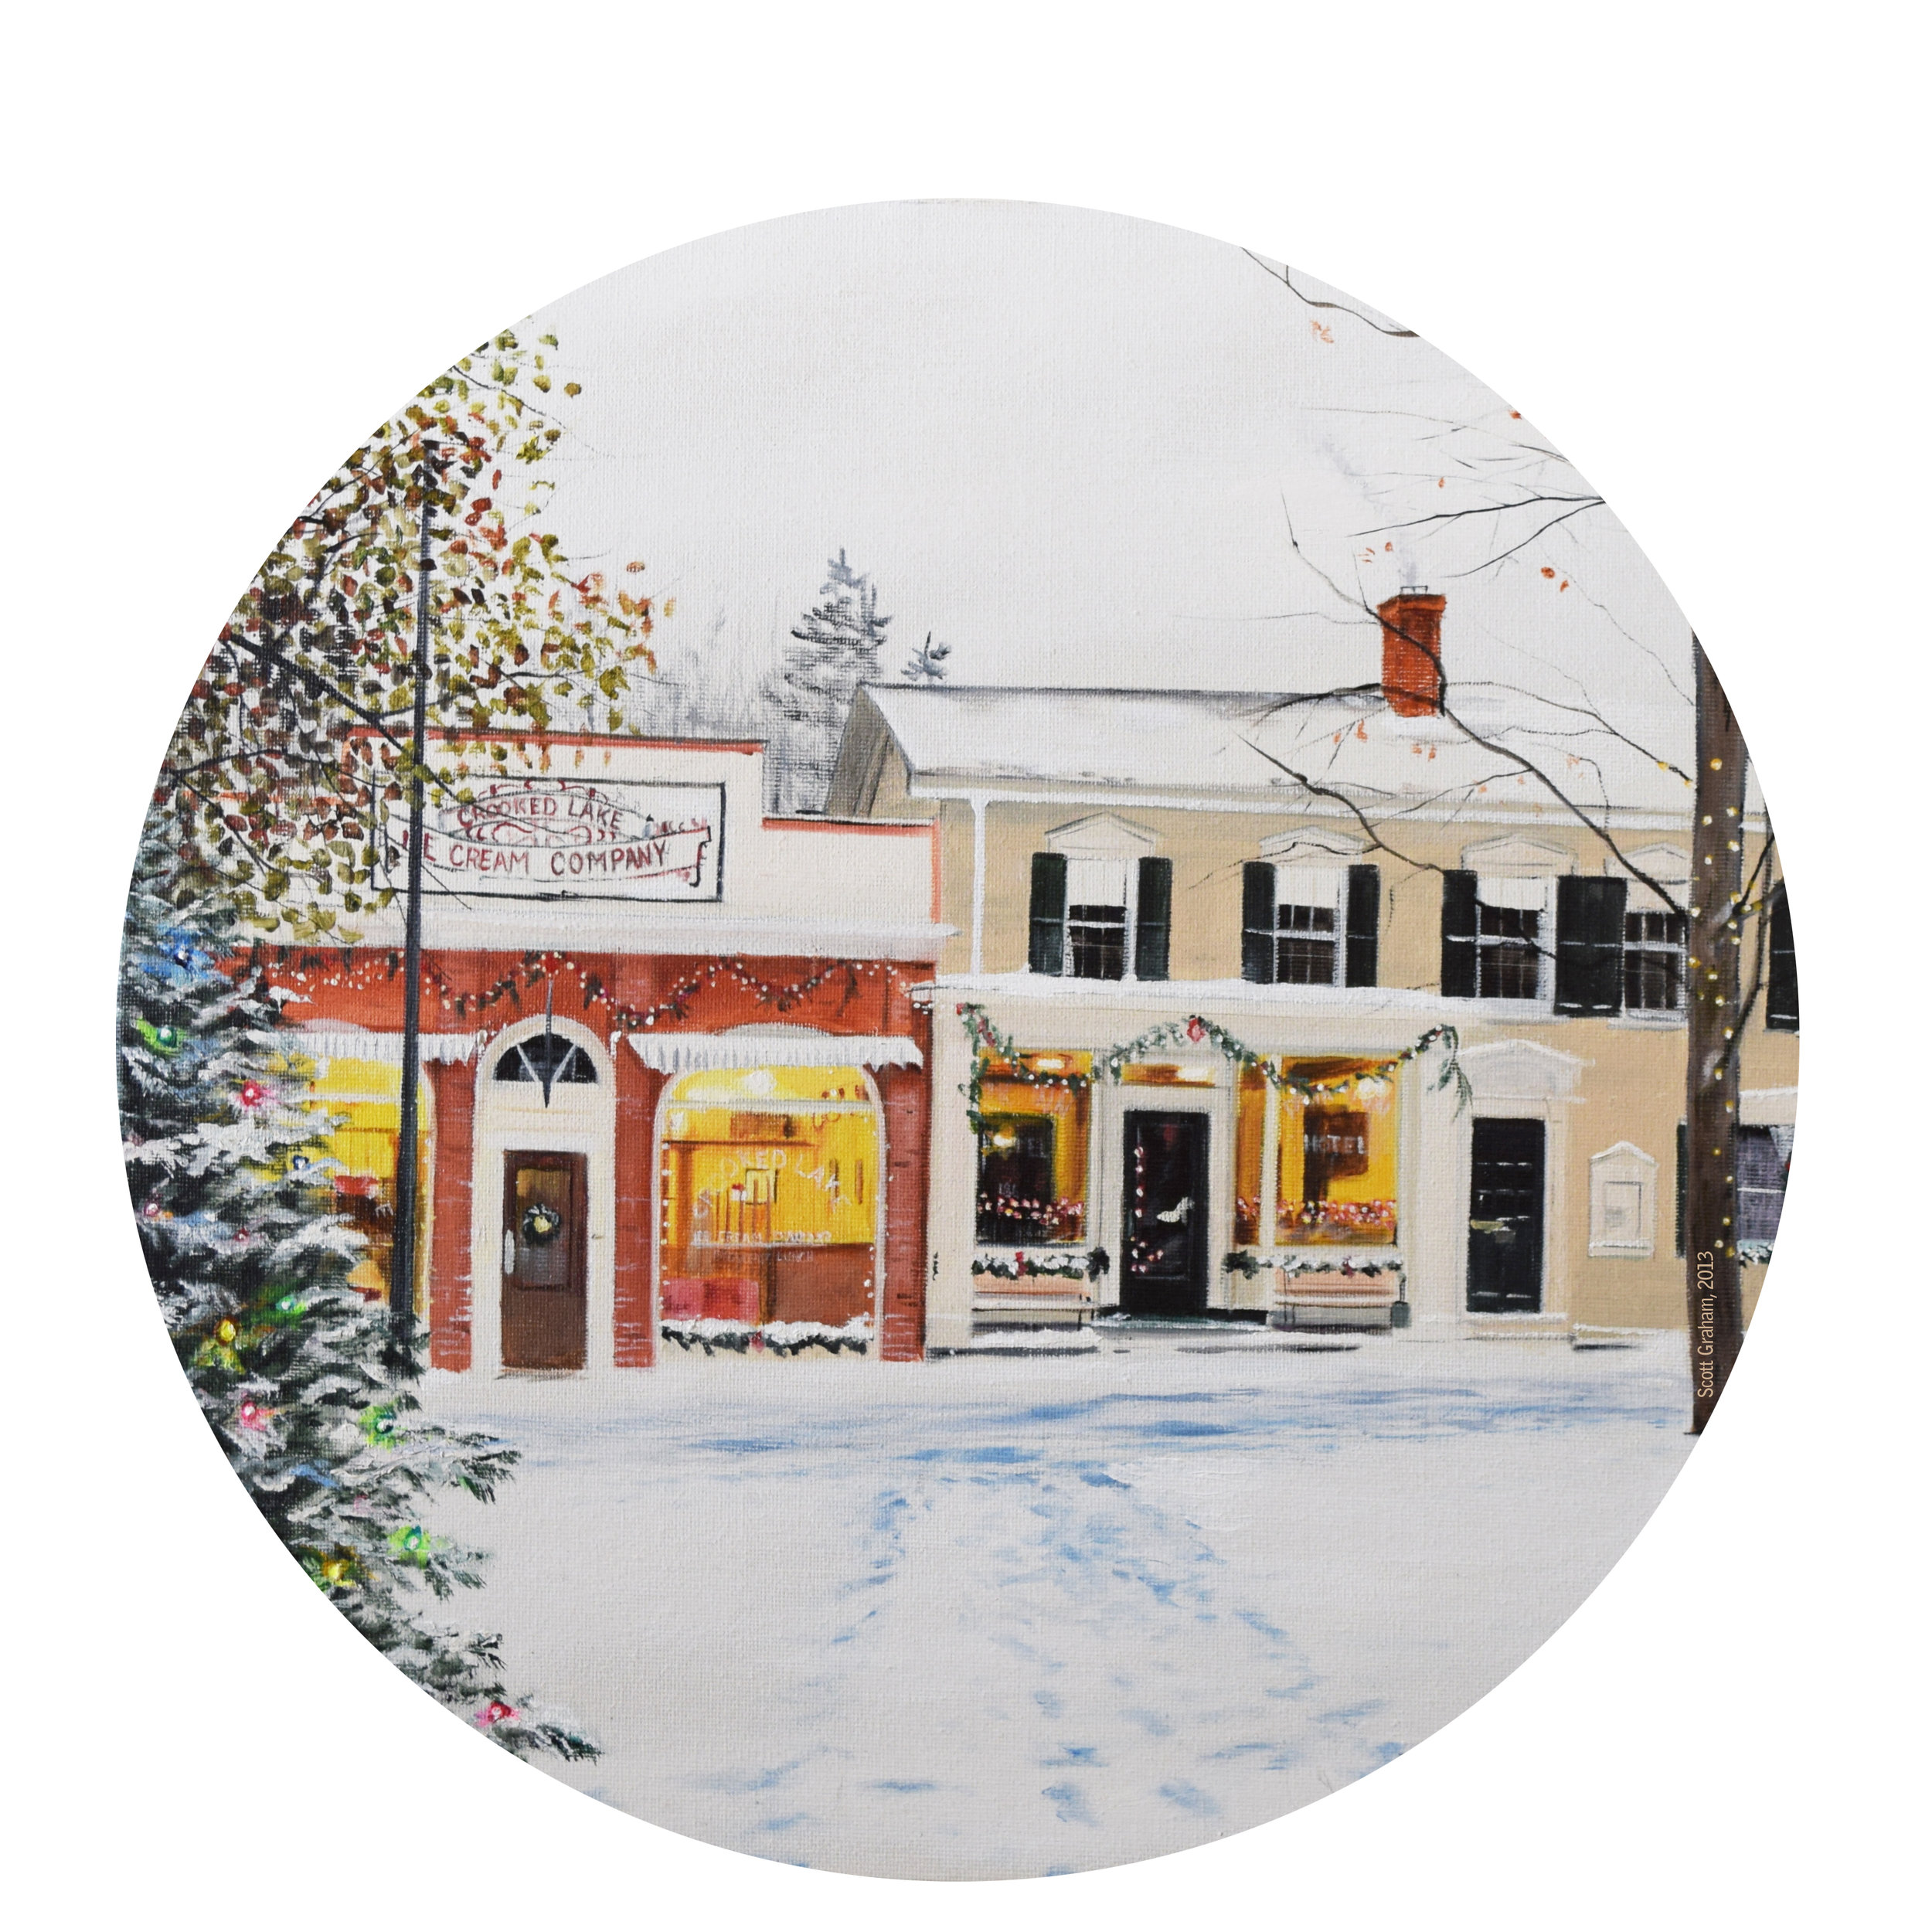 This year's cookie tin cover comes to us by way of Palettes of Keuka artist Scott Graham!